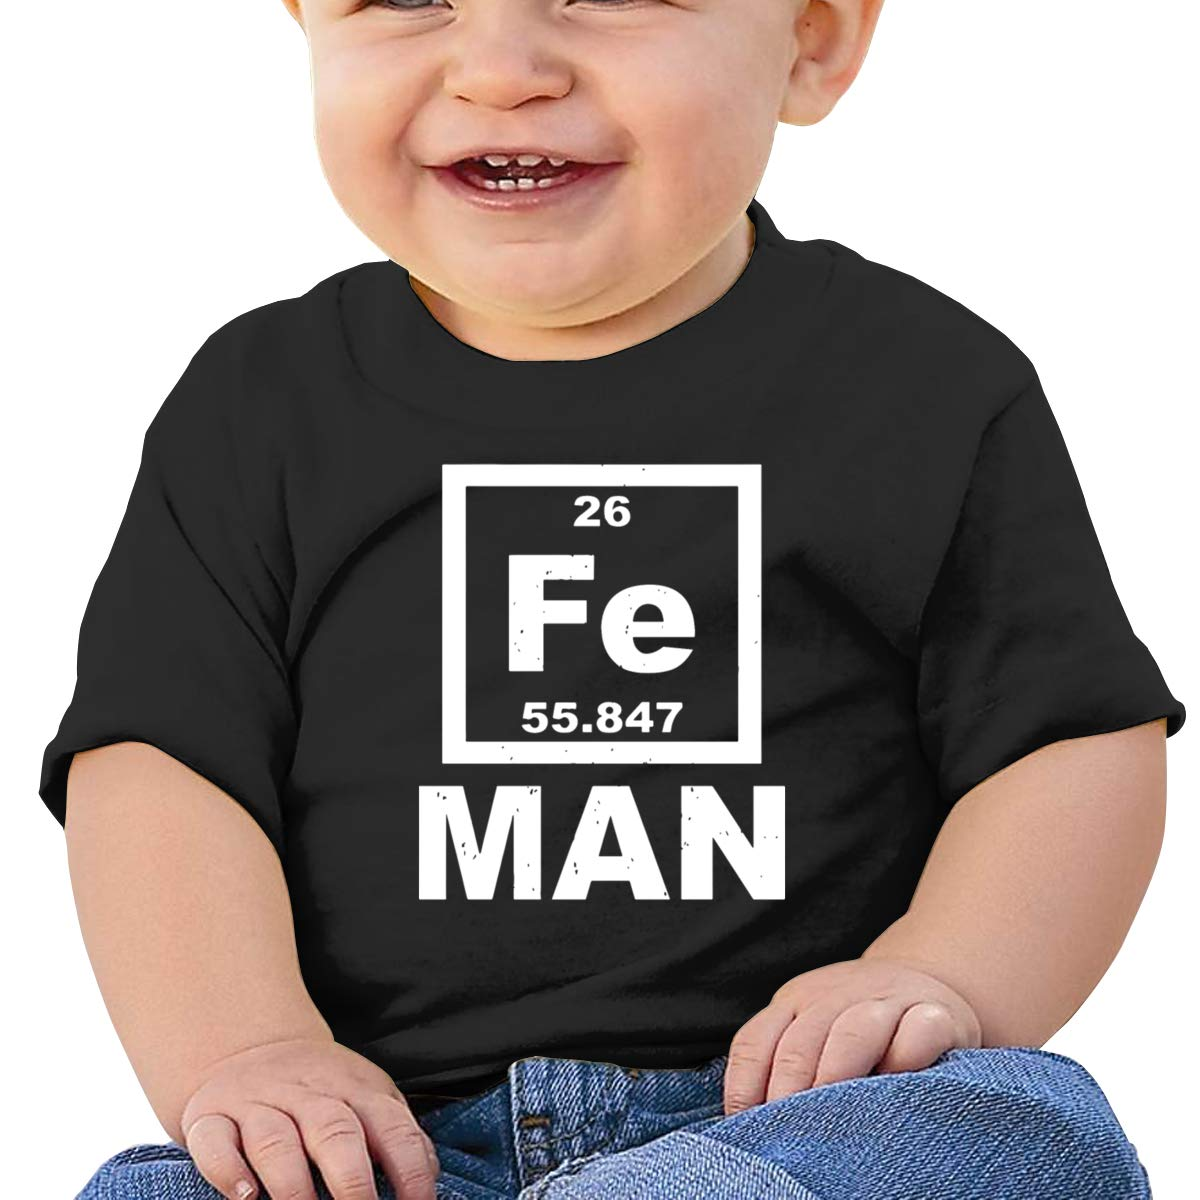 Qiop Nee Iron Science Fe Periodic Table 2 Short Sleeves T-Shirts Baby Boy